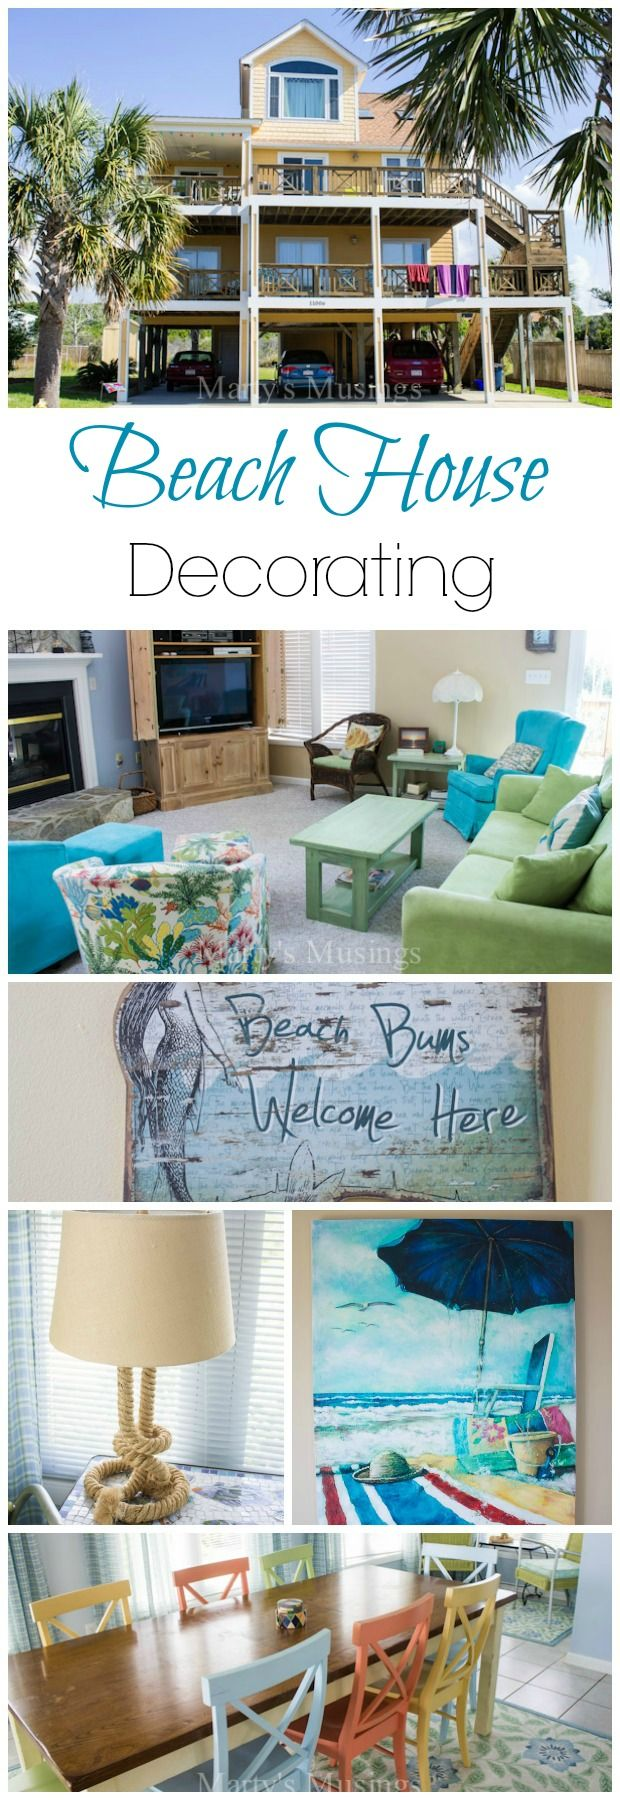 Plenty of detailed beach house decorating ideas and tips full of pictures from Marty's Musings.